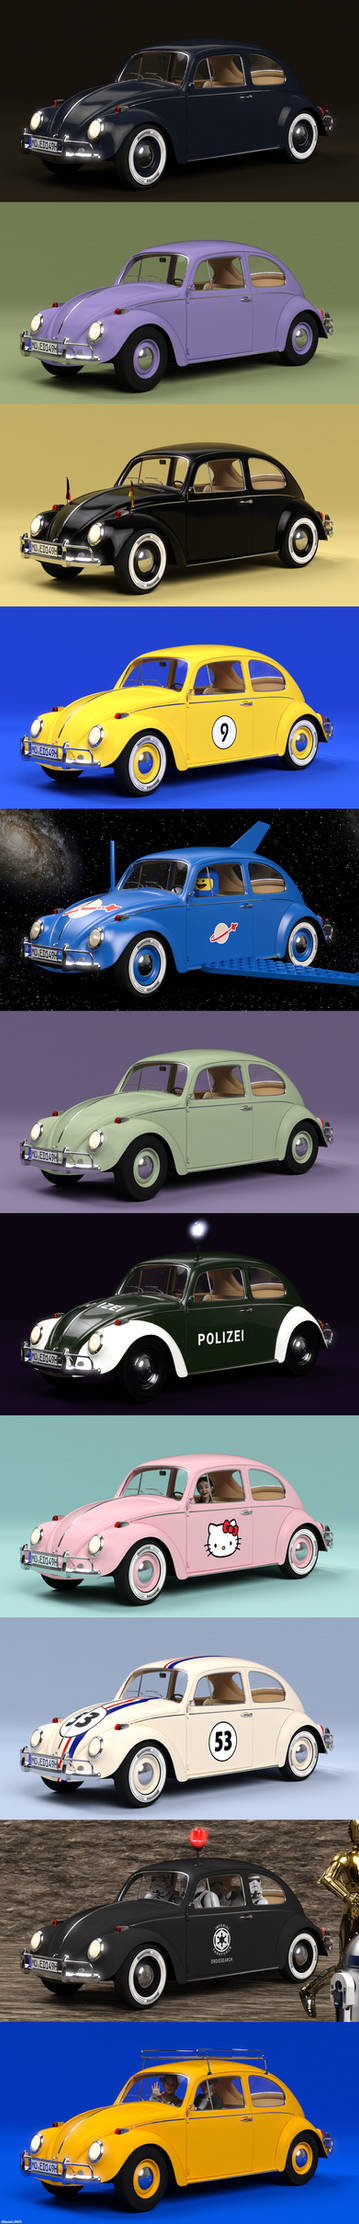 VW Beetle Variations!